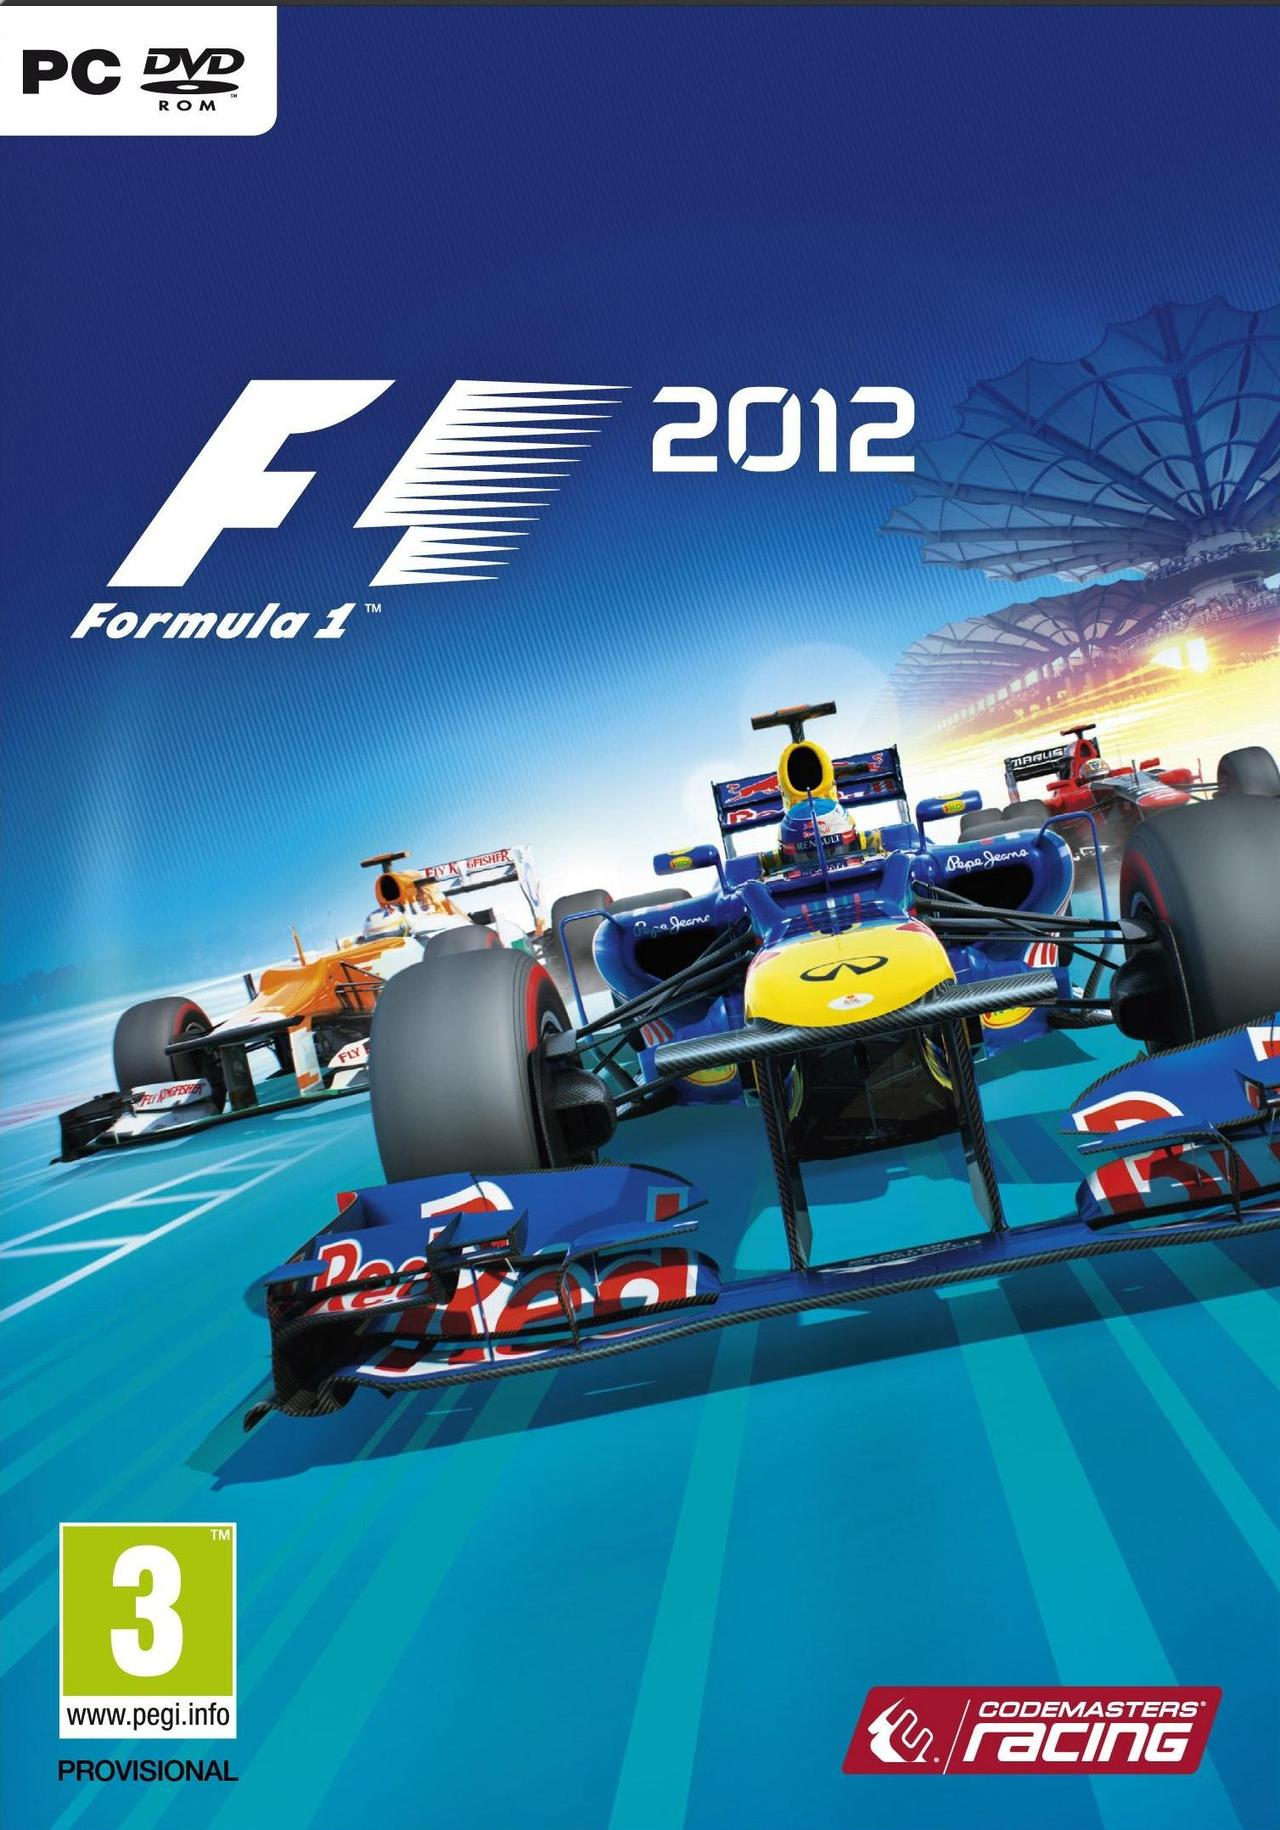 2012 F1 (Formula 1) (Steam) + DISCOUNTS